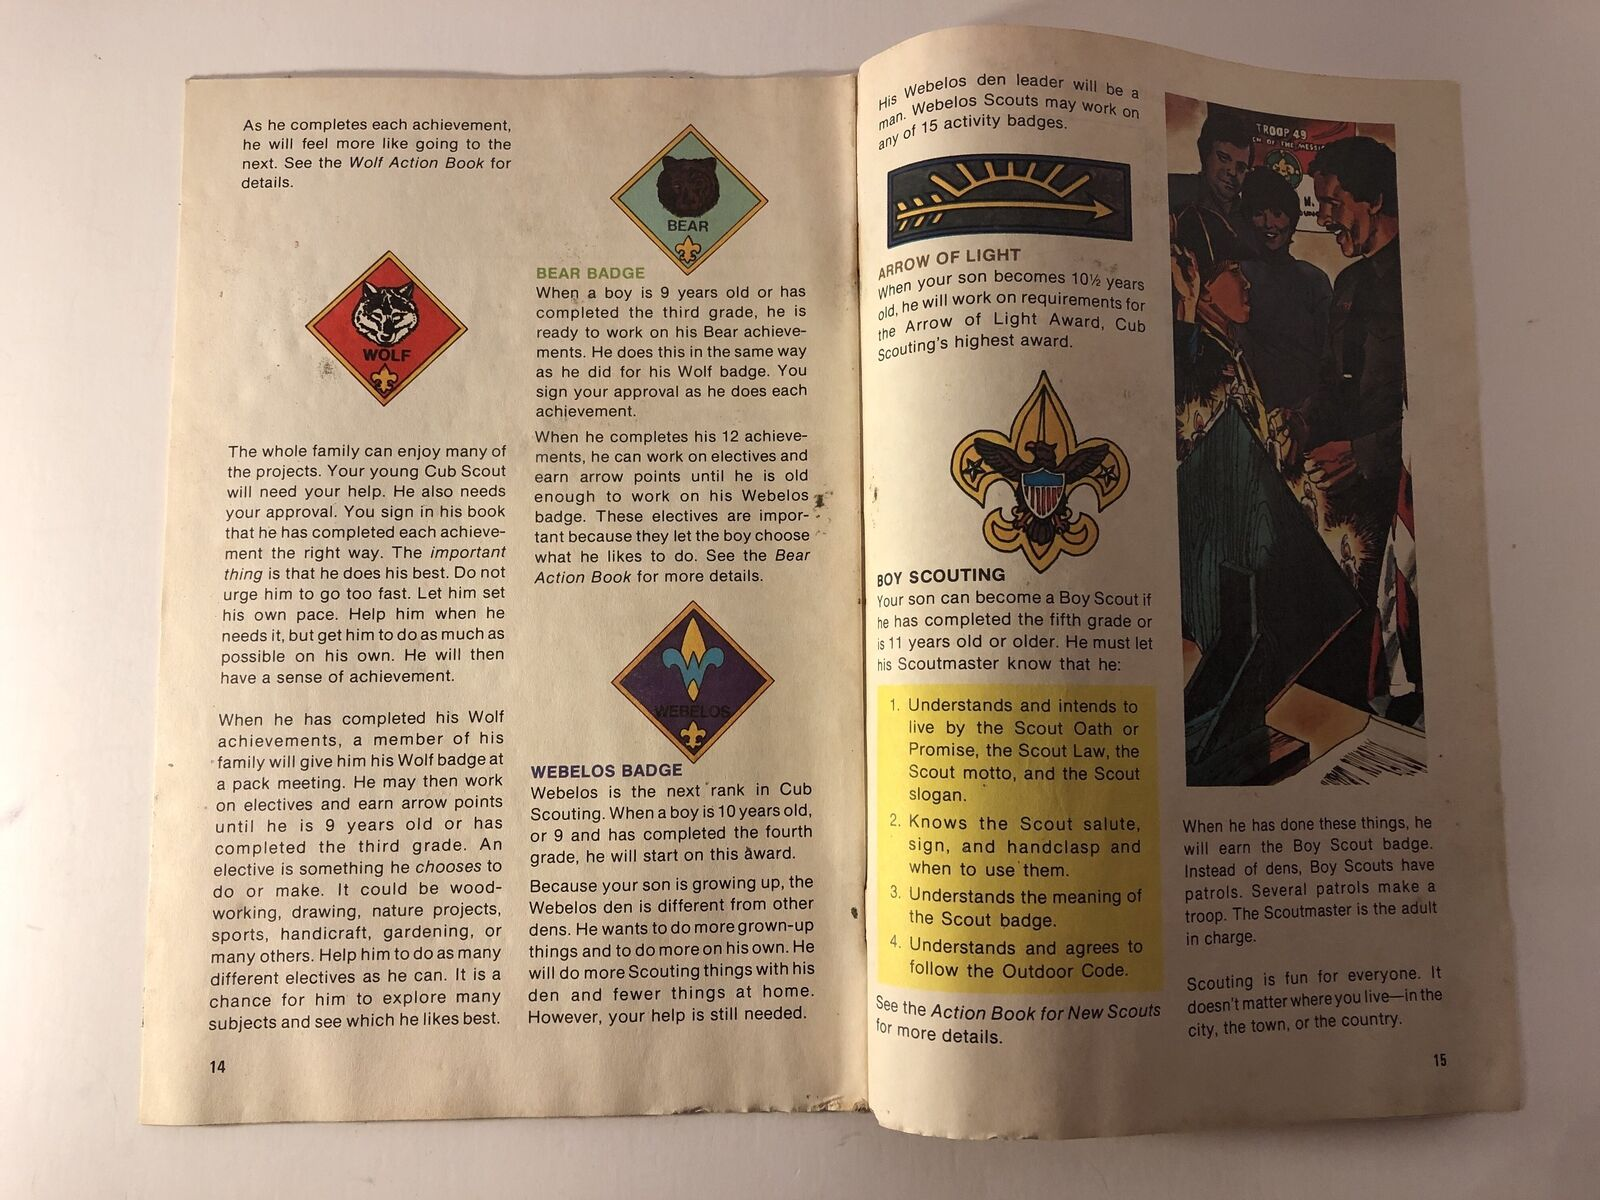 1983, A Cub Scout Action Book Family, Boy Scouts of America